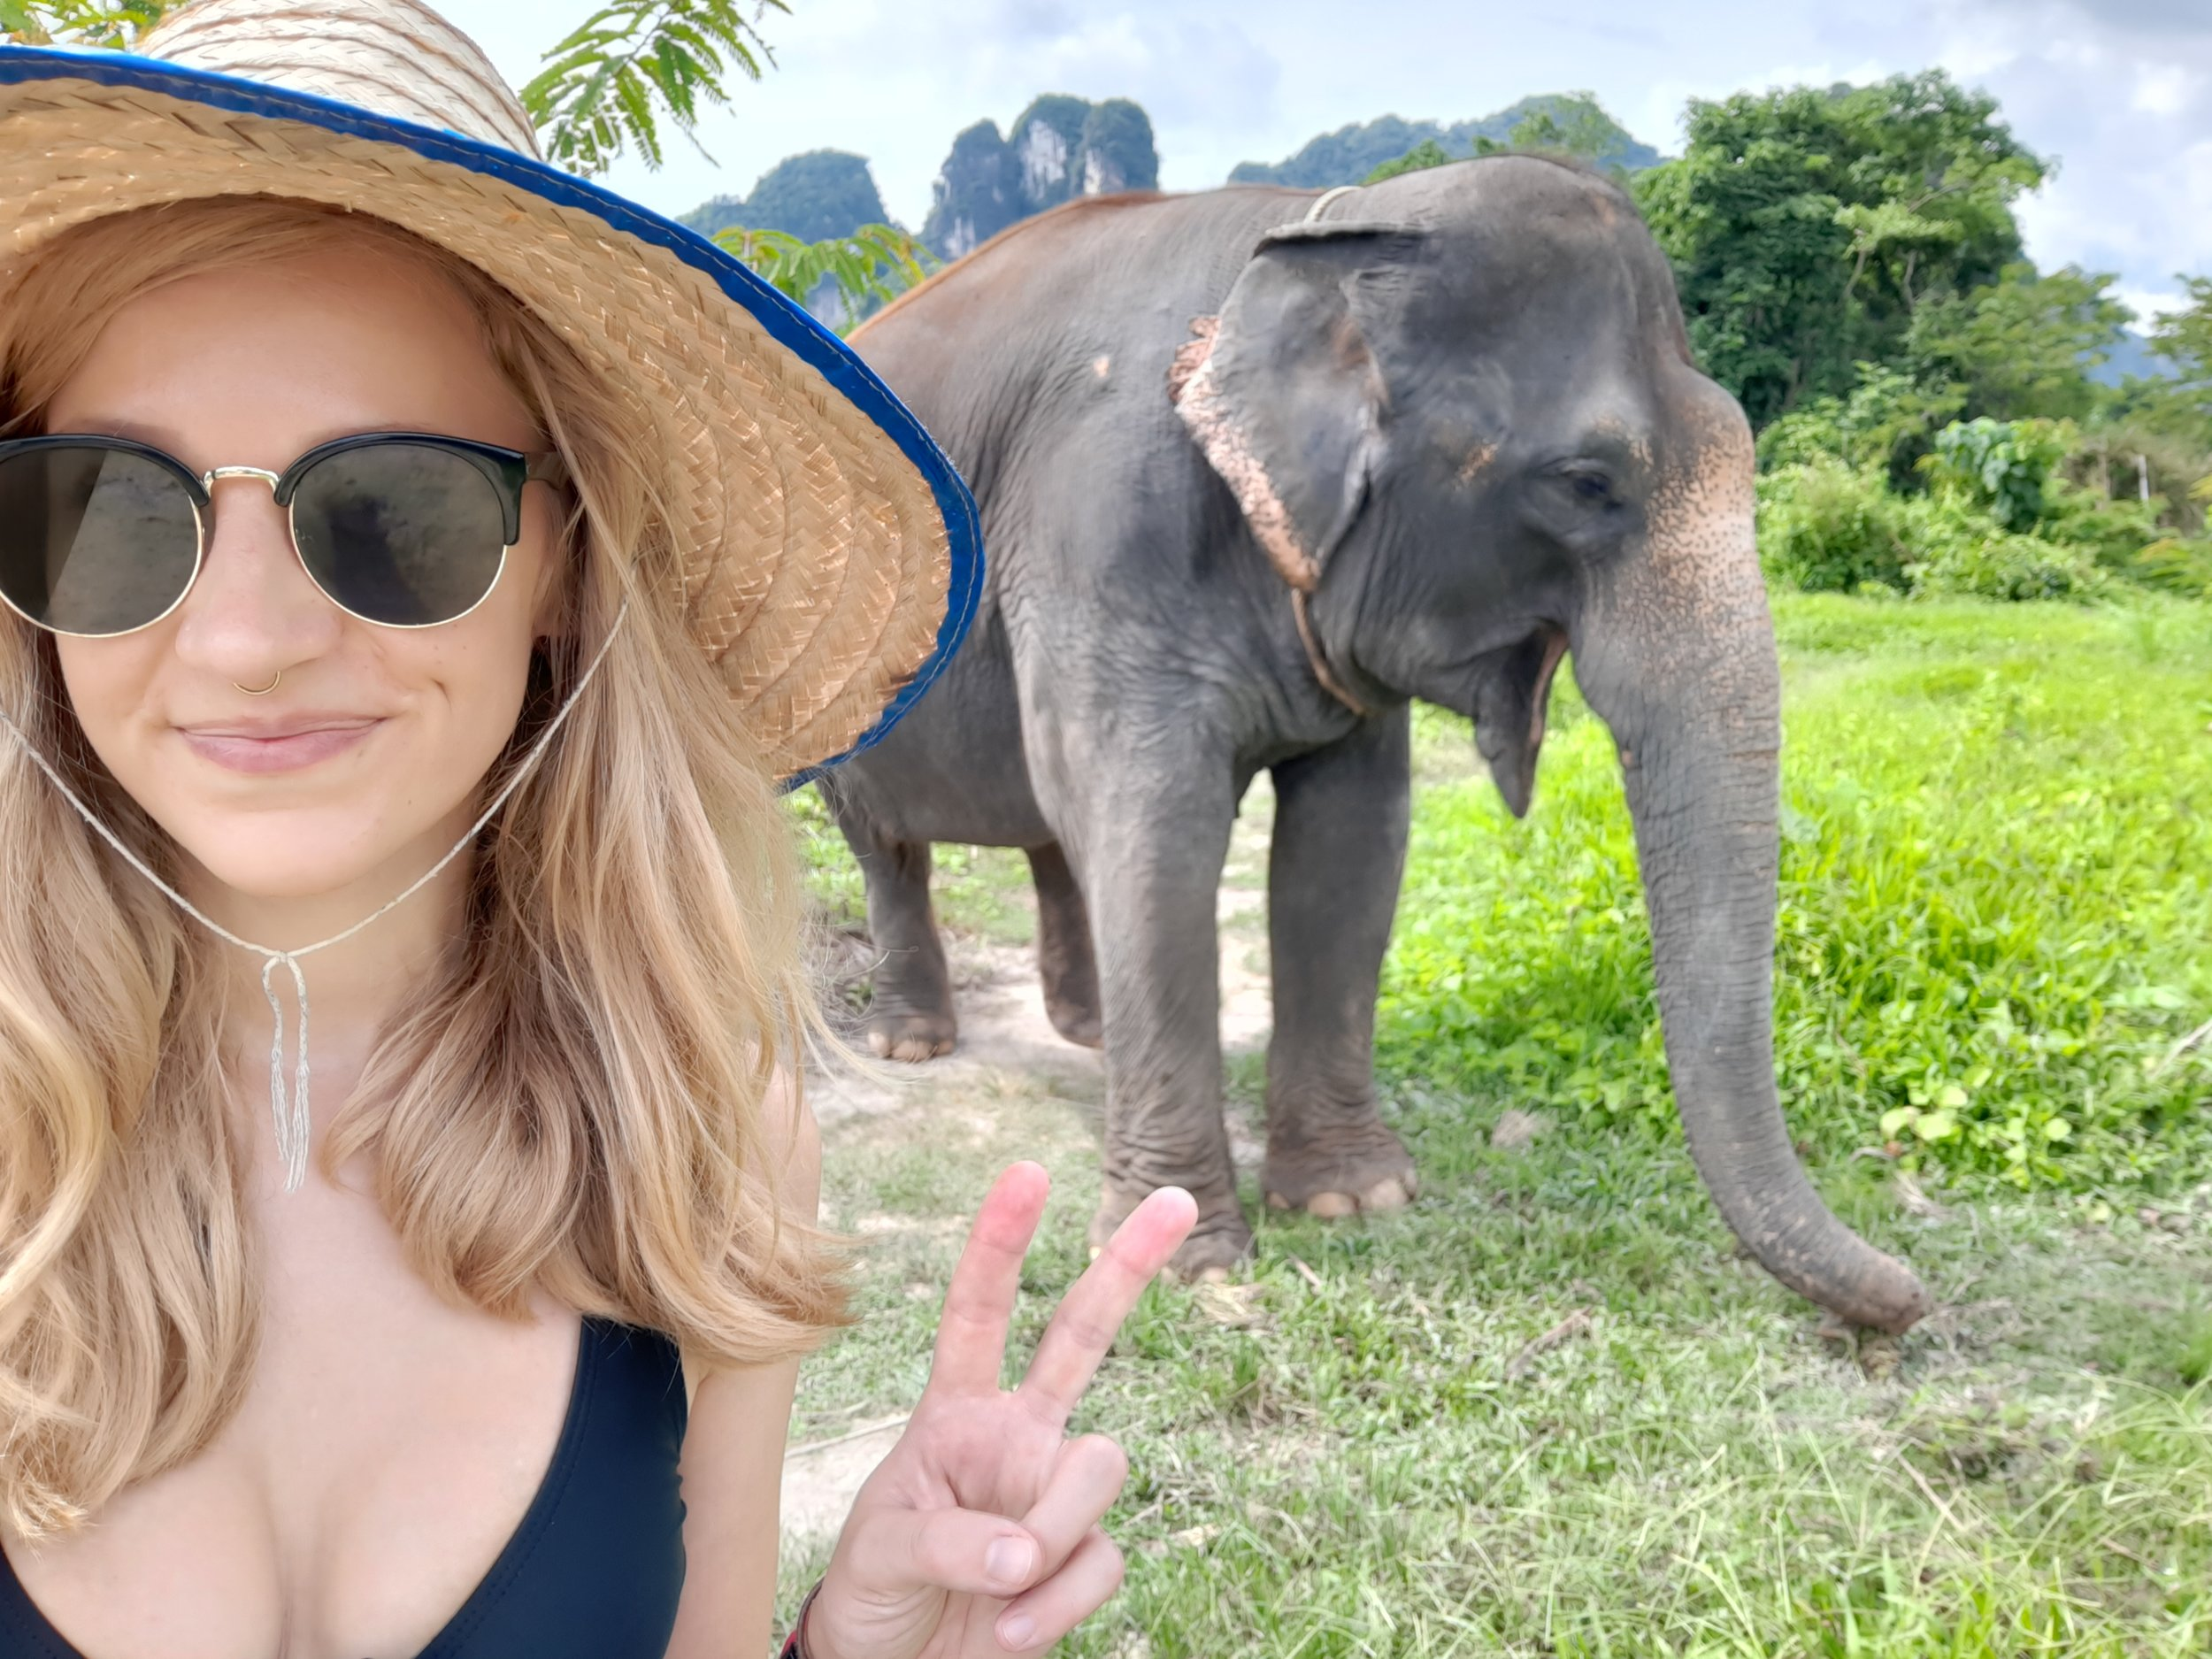 elephant-sanctuary-tourism-thailand.jpg